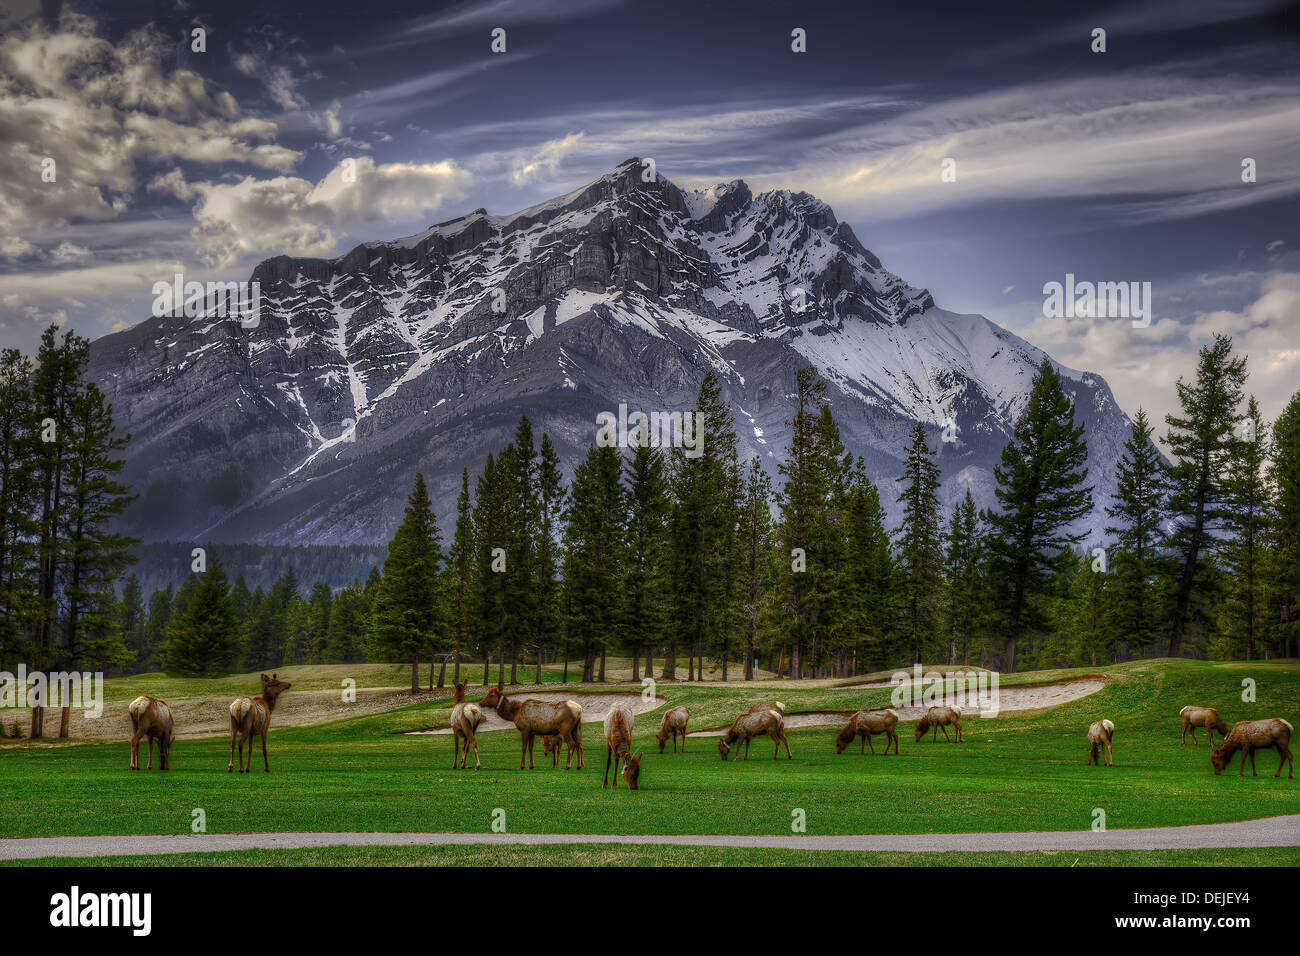 Elk grazing on golf course in Banff National Park, Alberta, Canada with Rocky Mountains looming in background - Stock Image